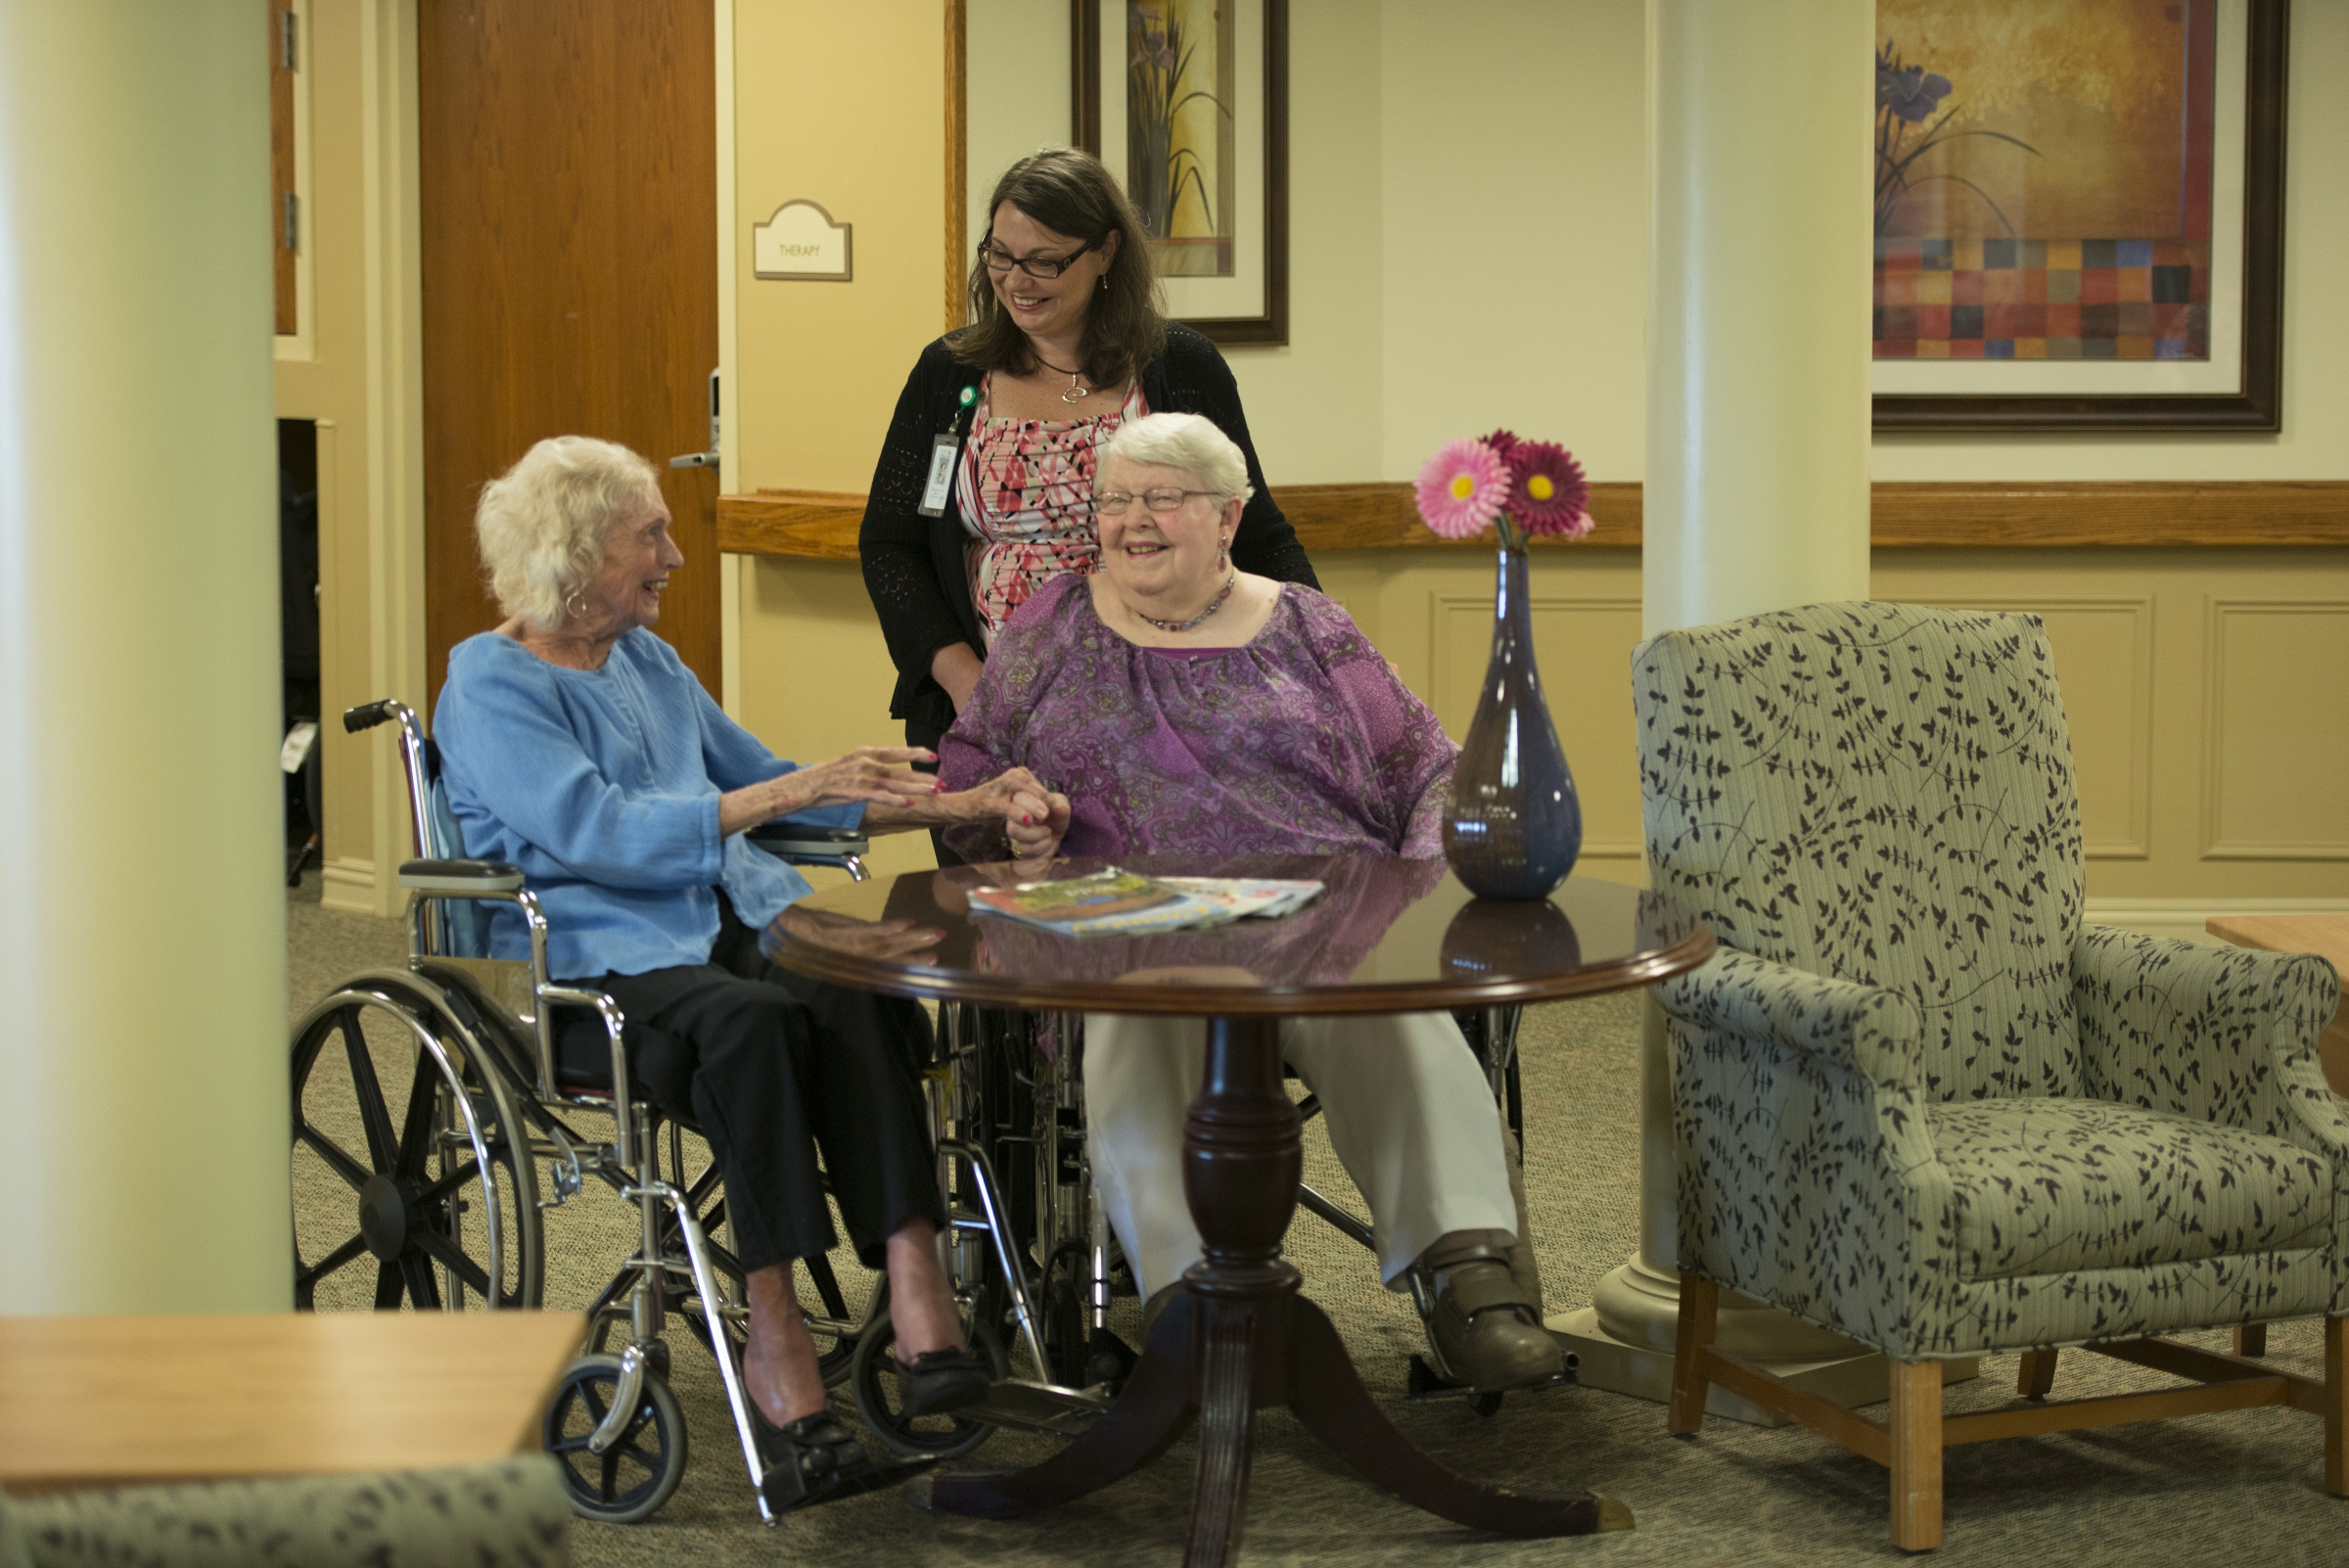 Skilled Nursing Care in Lititz, PA